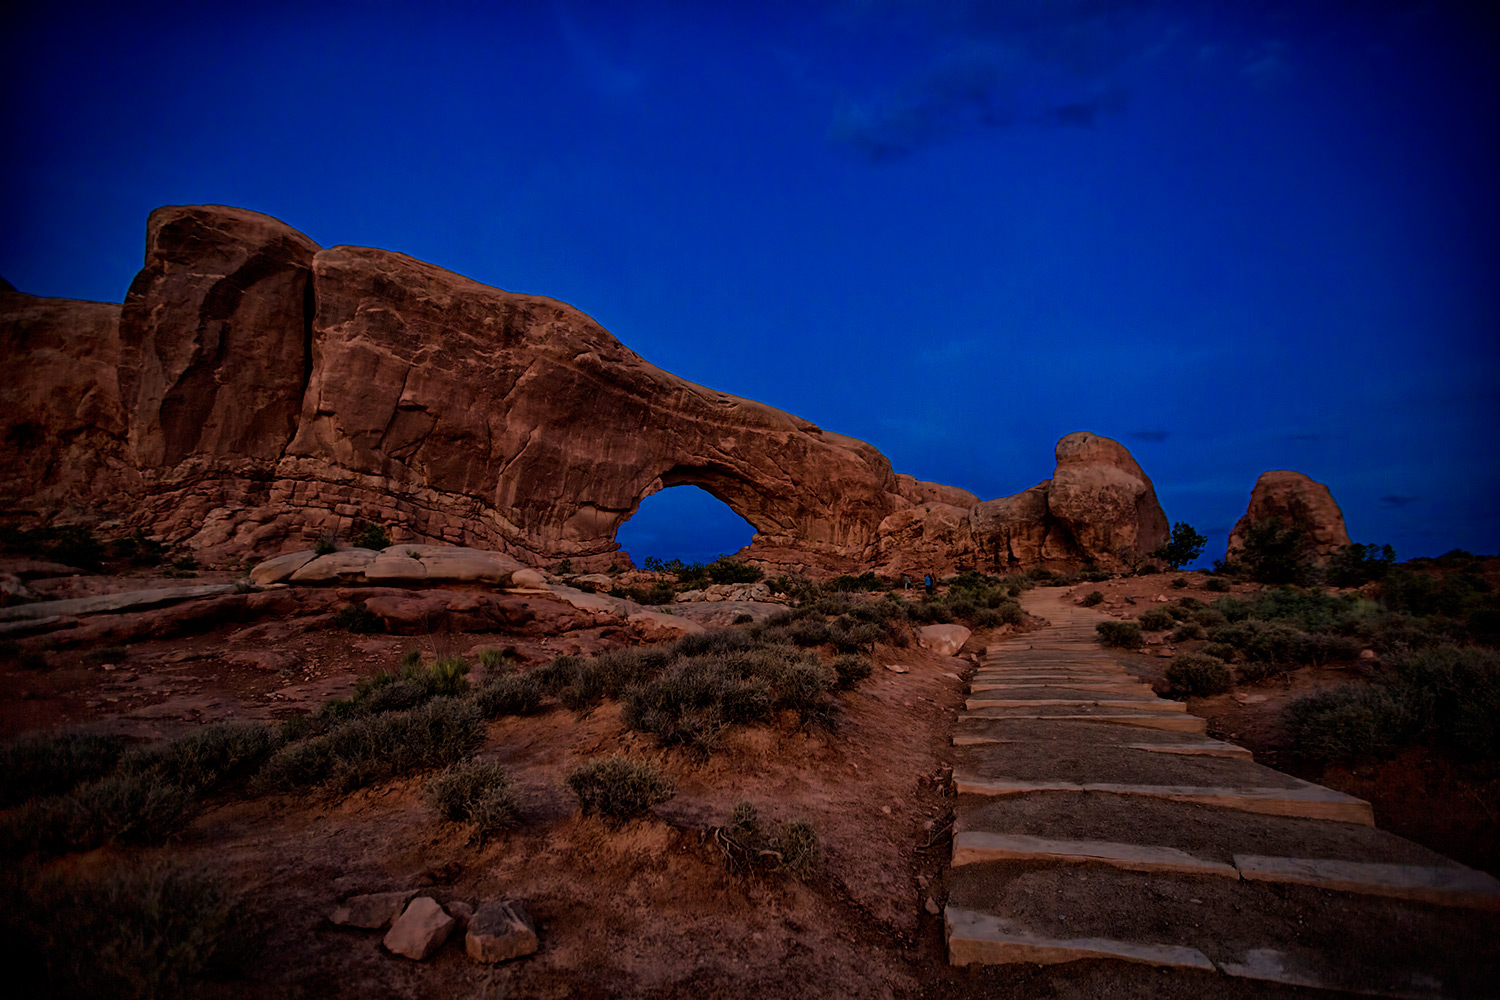 6 - 3 Tips for Blue Hour Photography